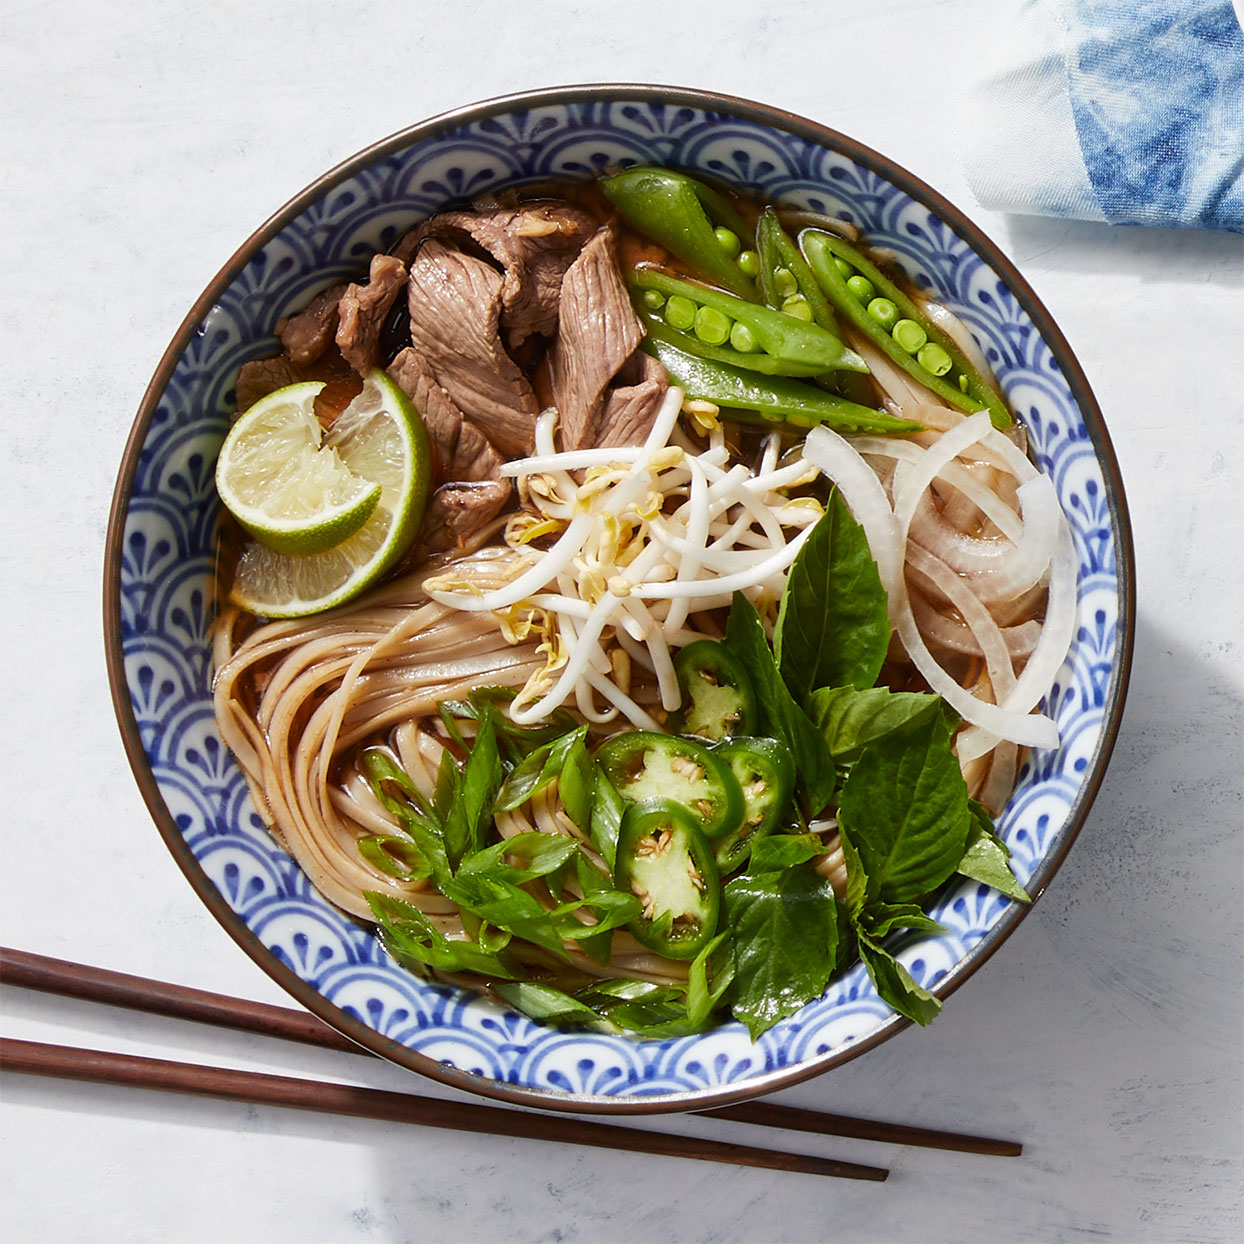 Traditional Vietnamese beef pho involves simmering whole herbs and aromatics for hours to achieve a rich, clear broth with a deep flavor; this shortcut version simmers ground spices for just 15 minutes, yet still achieves a savory, rich broth. Source: Diabetic Living Magazine, Spring 2020